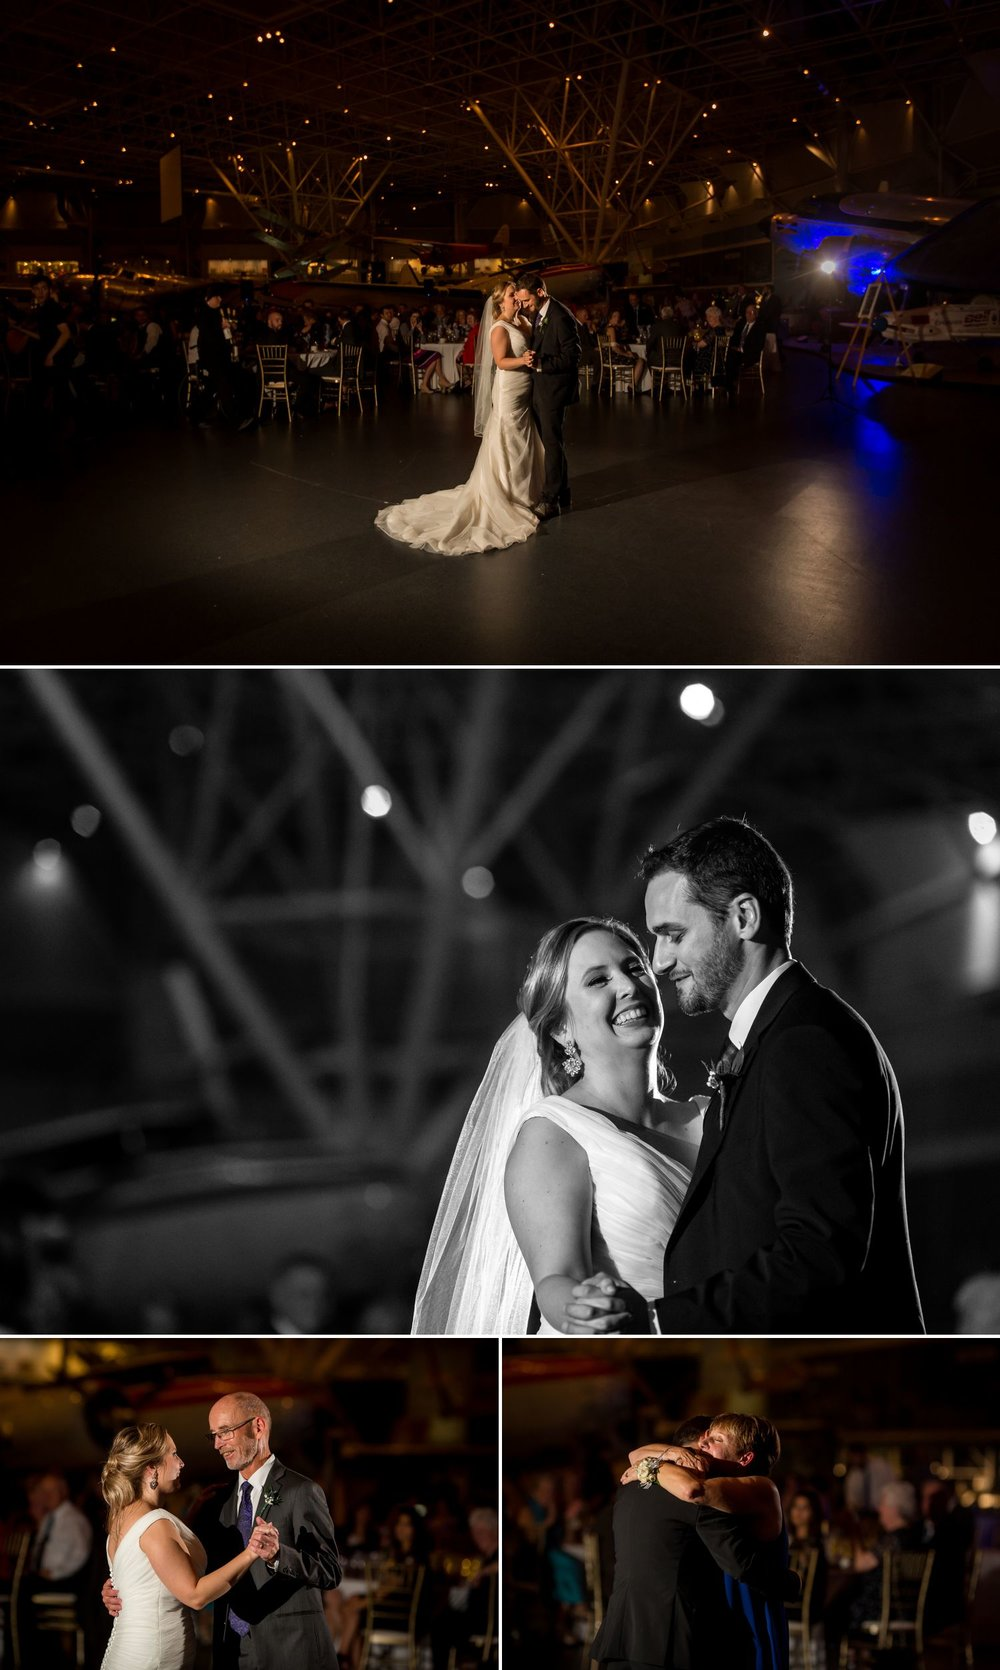 The bride and groom during their first dances at their wedding reception inside the Canadian Aviation and Space Museum in downtown Ottawa